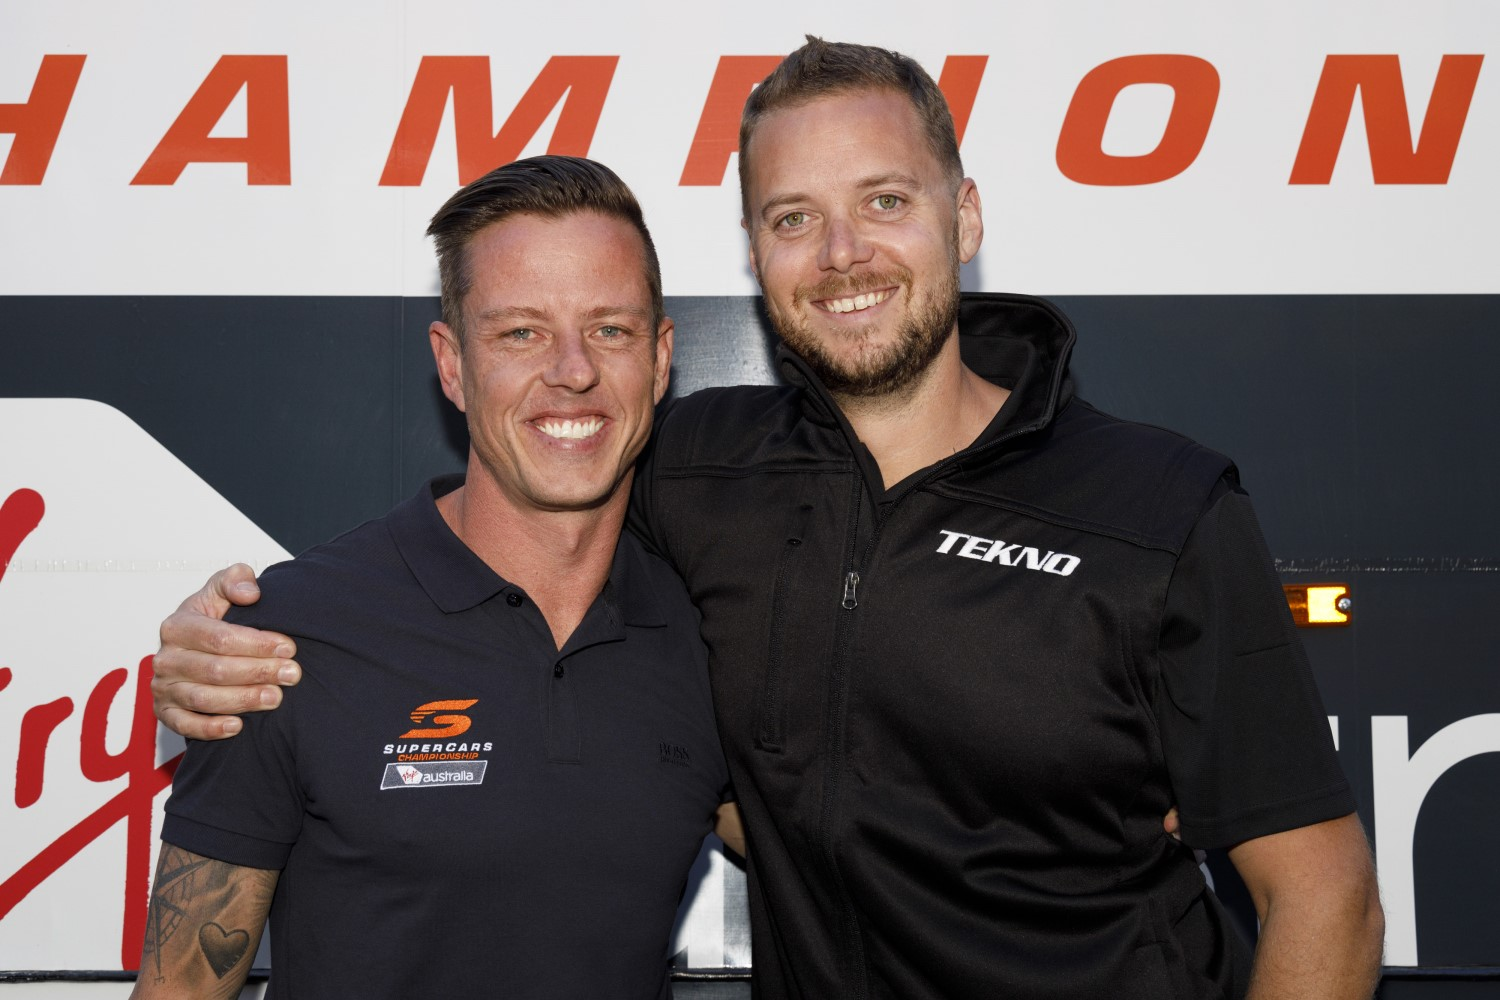 James Courtney and Jonathon Webb